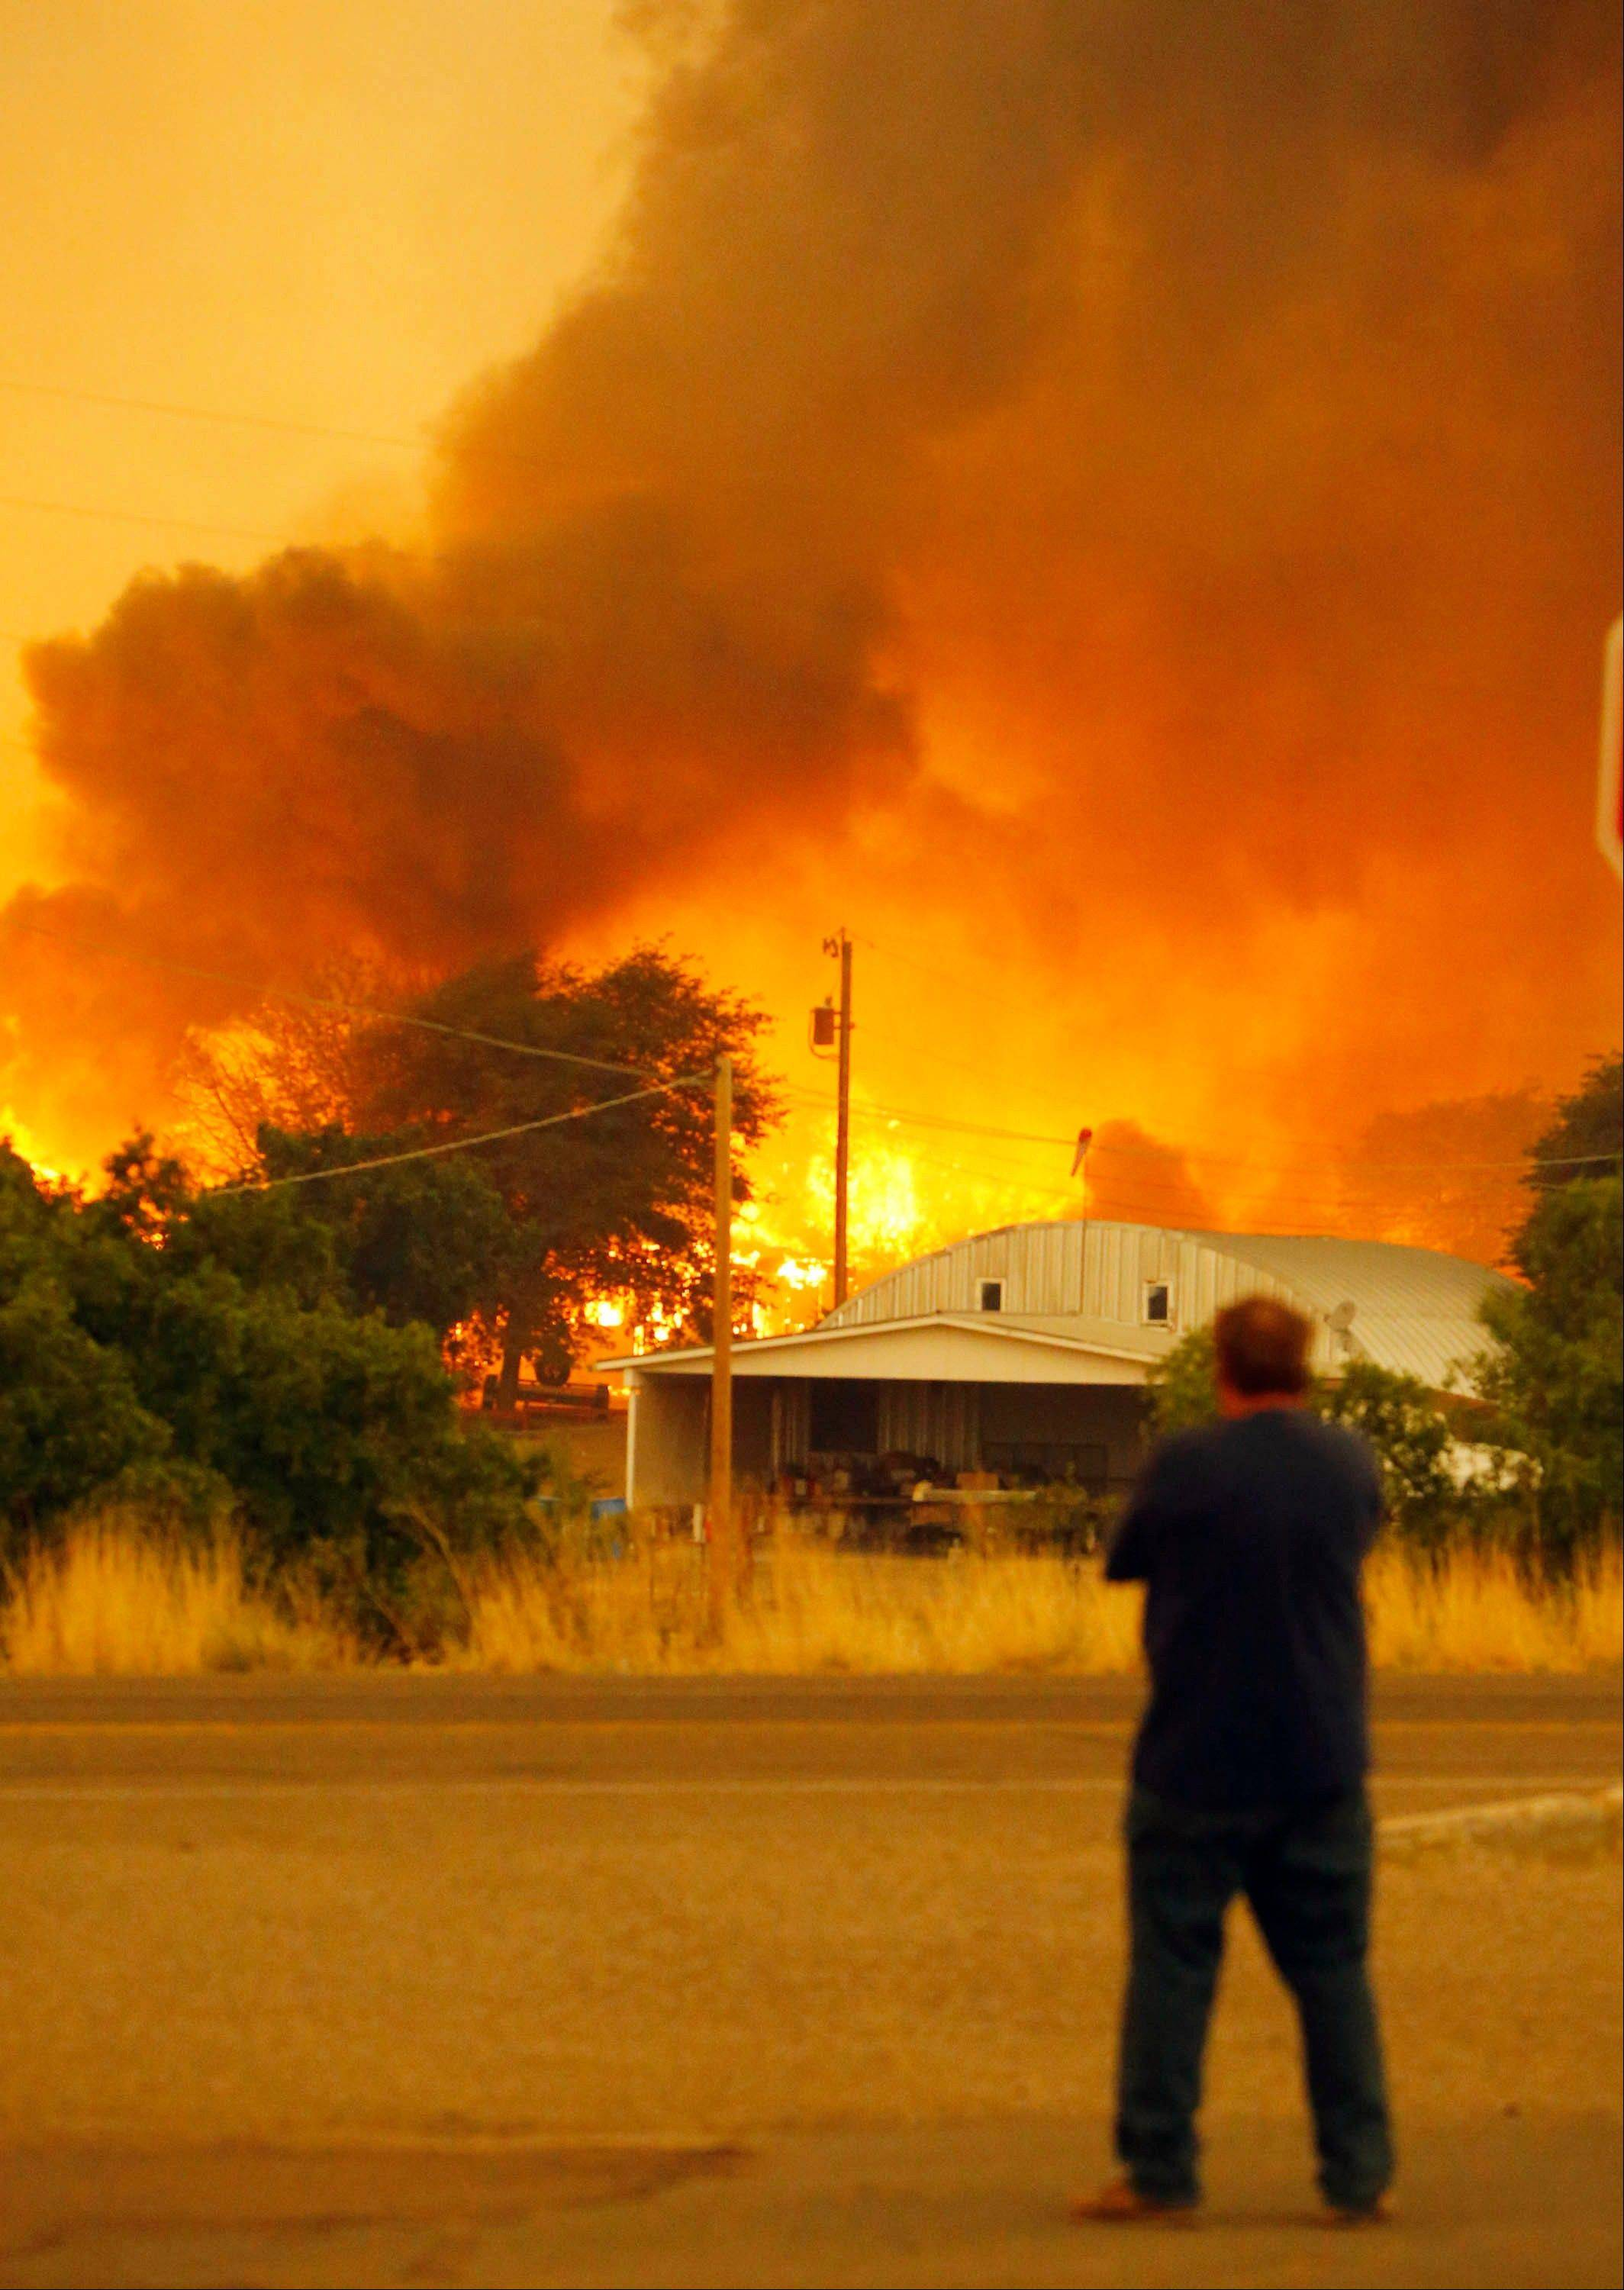 Dean Smith watches as the Yarnell Hill Fire encroaches on his home in Glenn Ilah on Sunday, June 30, 2013 near Yarnell, Ariz. The fire started Friday and picked up momentum as the area experienced high temperatures, low humidity and windy conditions. It has forced the evacuation of residents in the Peeples Valley area and in the town of Yarnell.